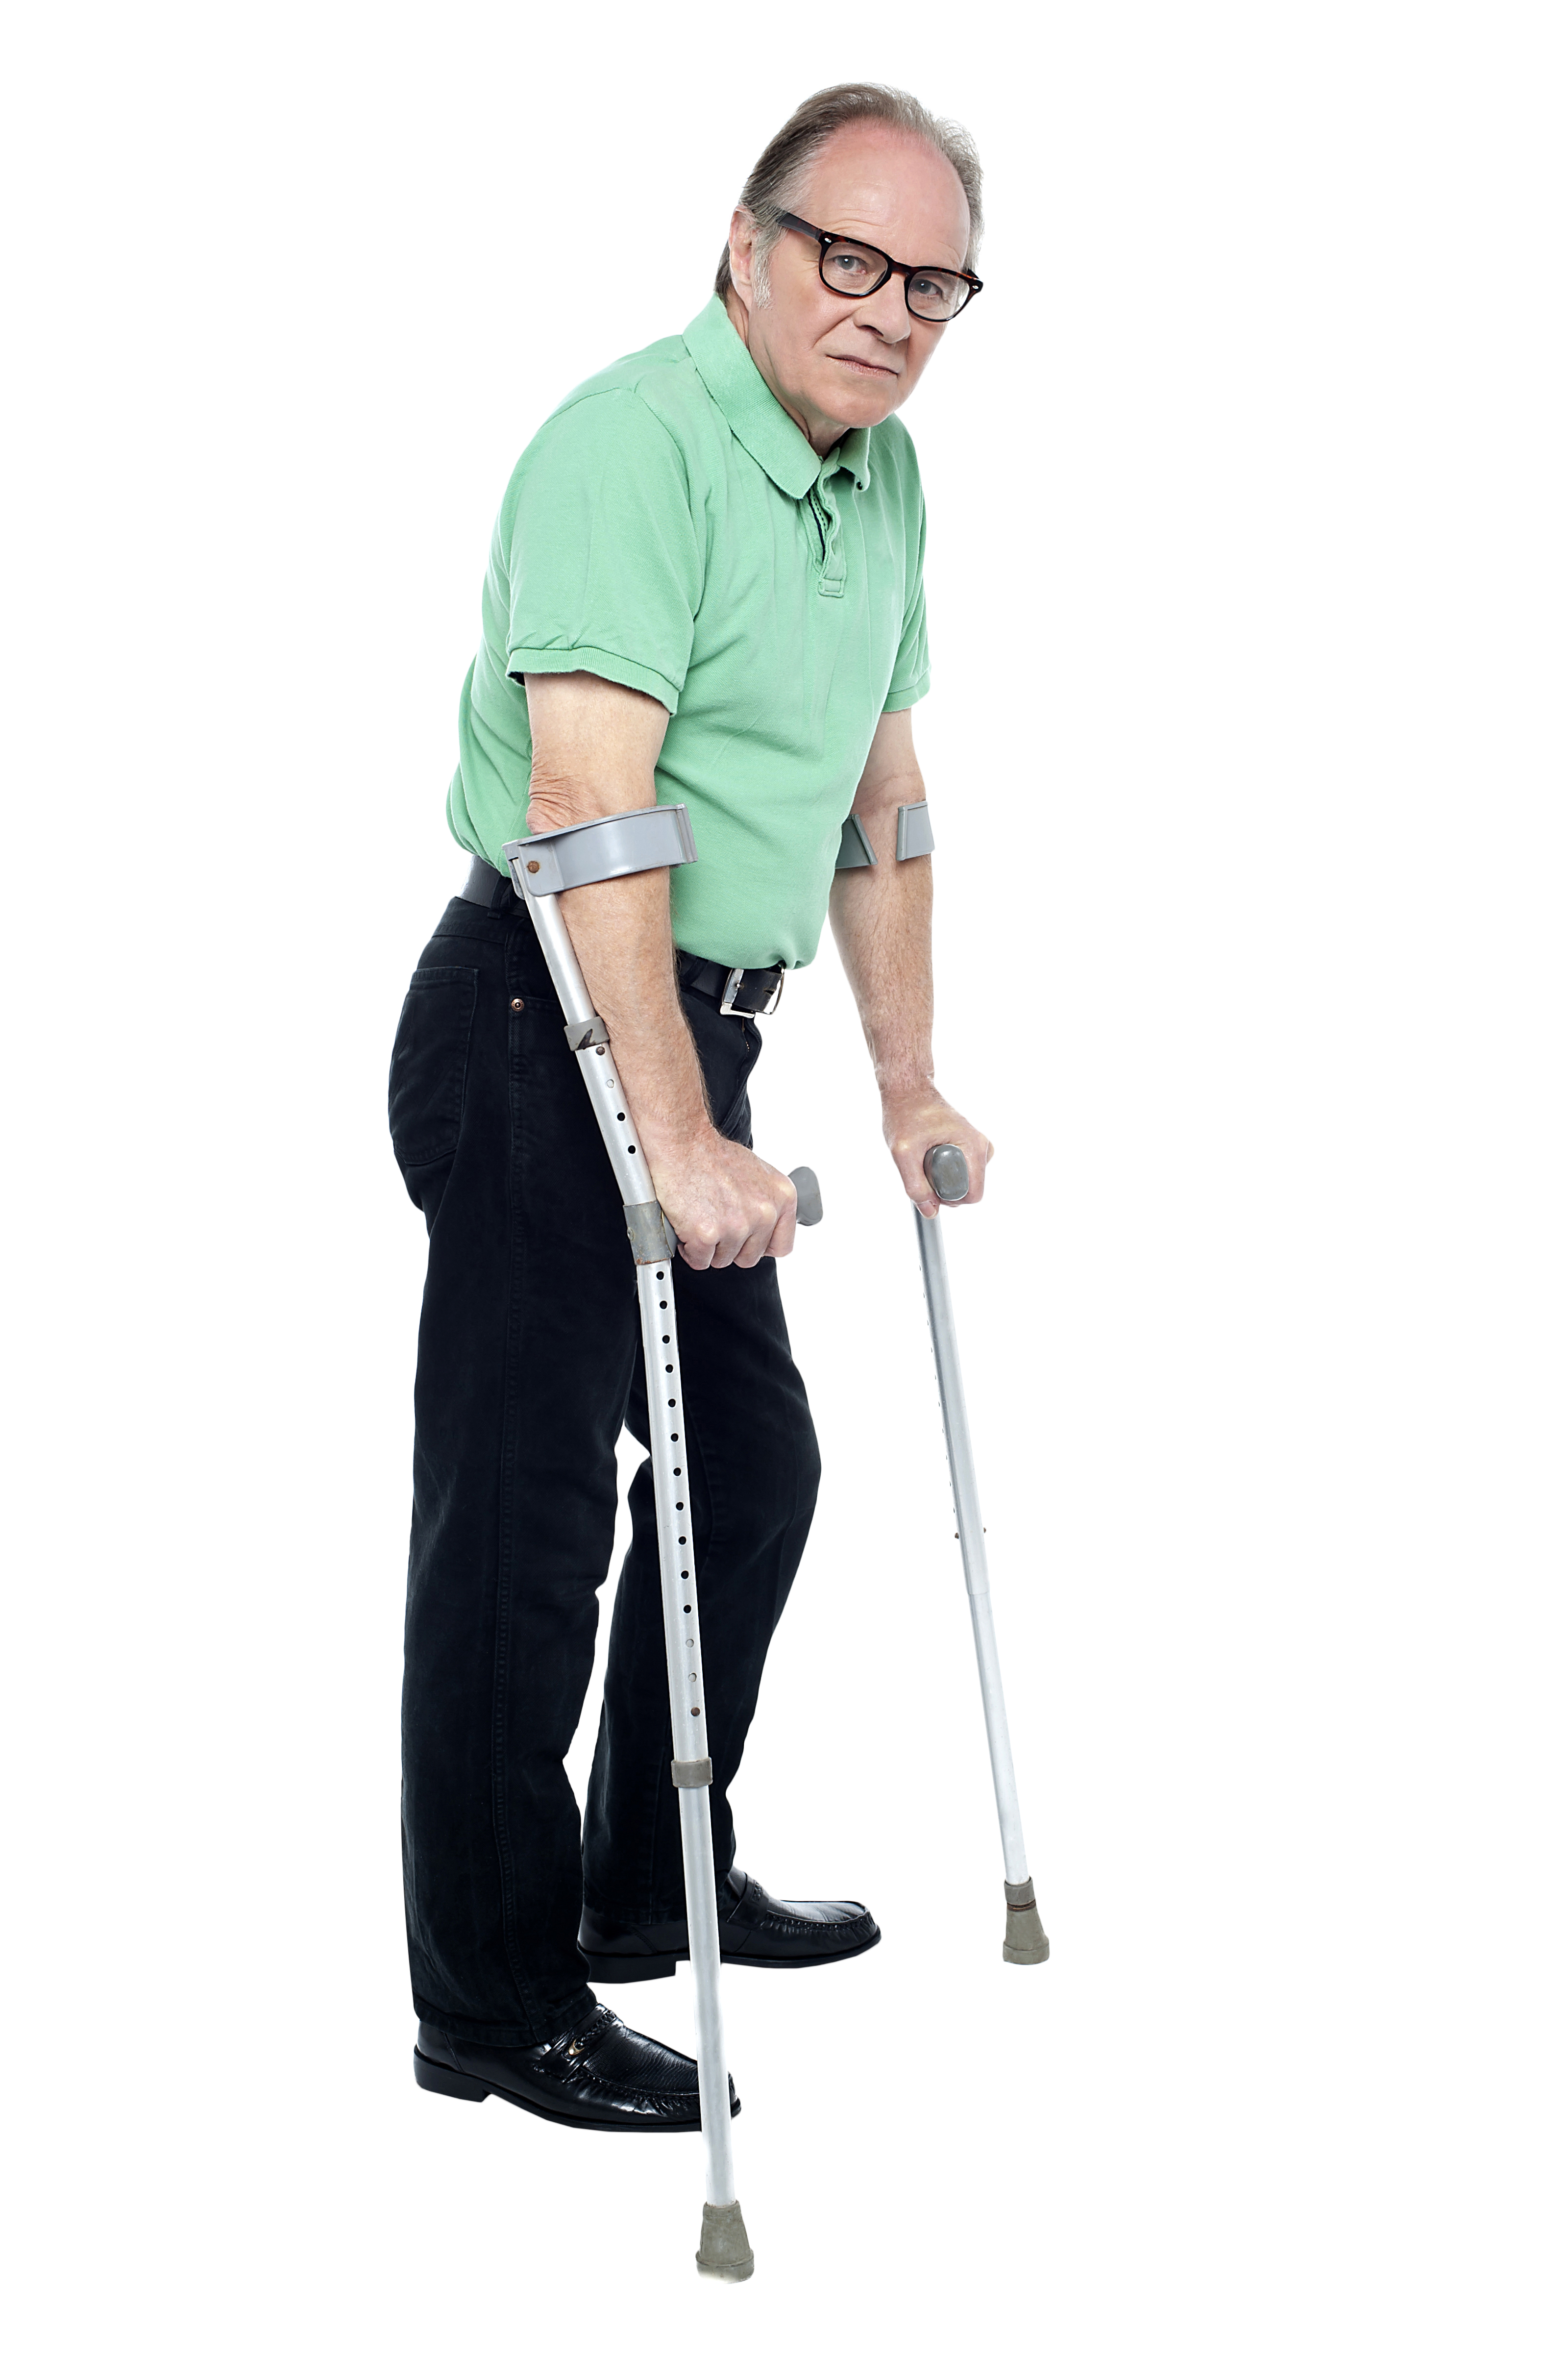 Old Man Standing Png - Old Man Png Image, Transparent background PNG HD thumbnail